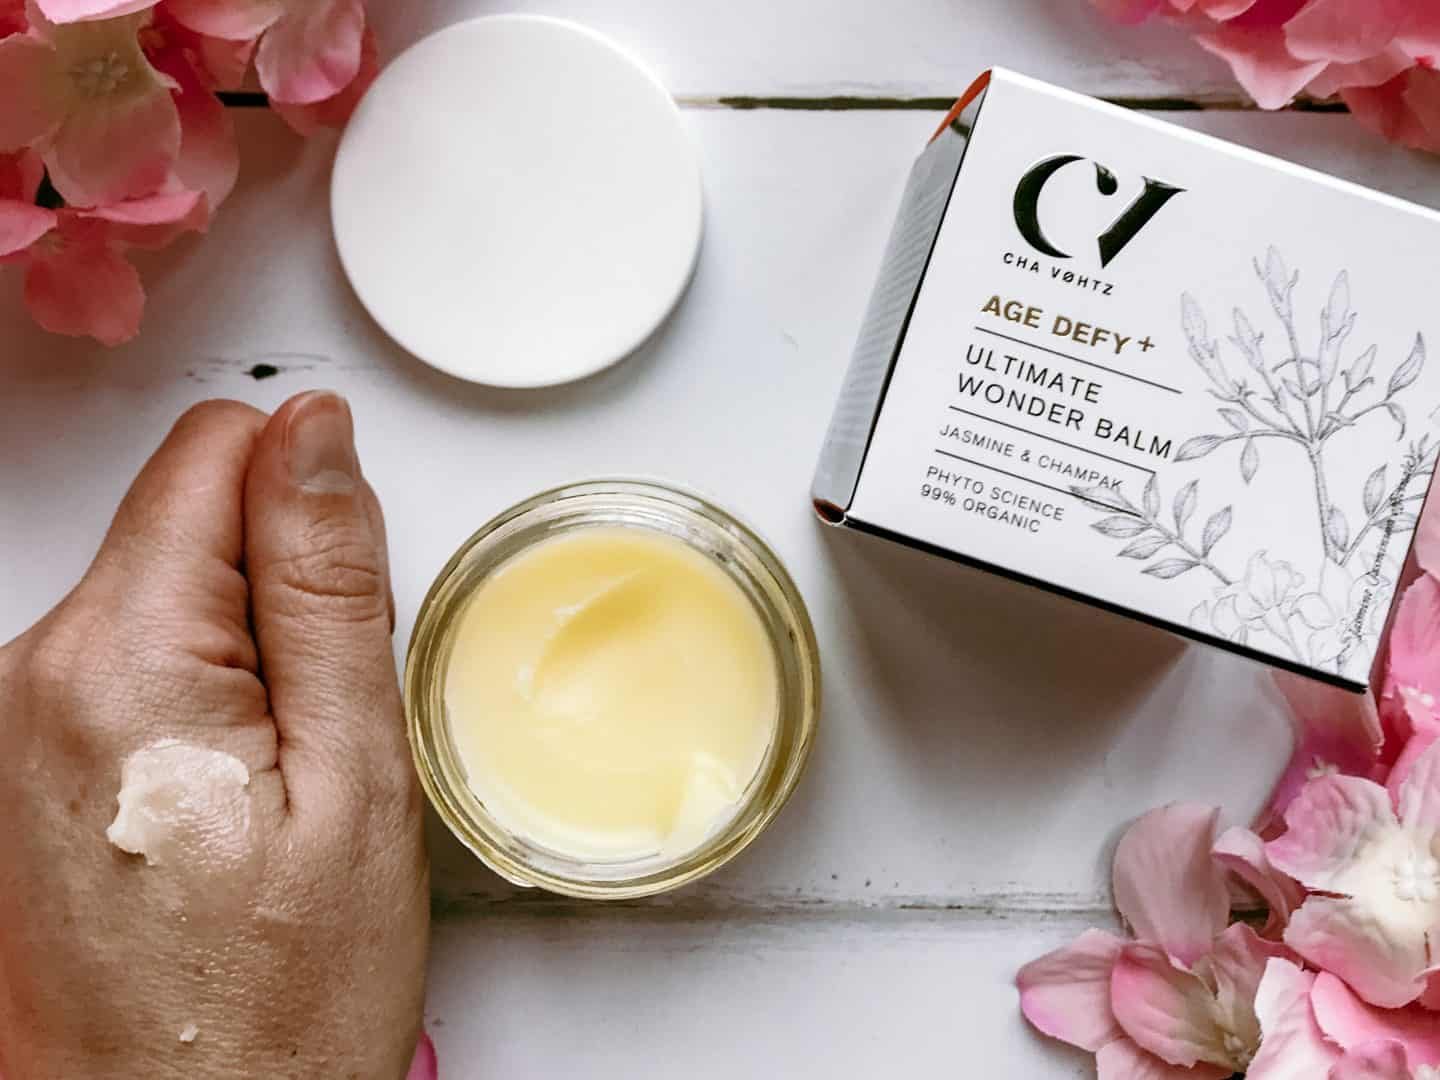 Organic Skincare for 35+ from Green People- Age Defy+ by Cha Vøhtz Ultimate Wonder Balm swatch